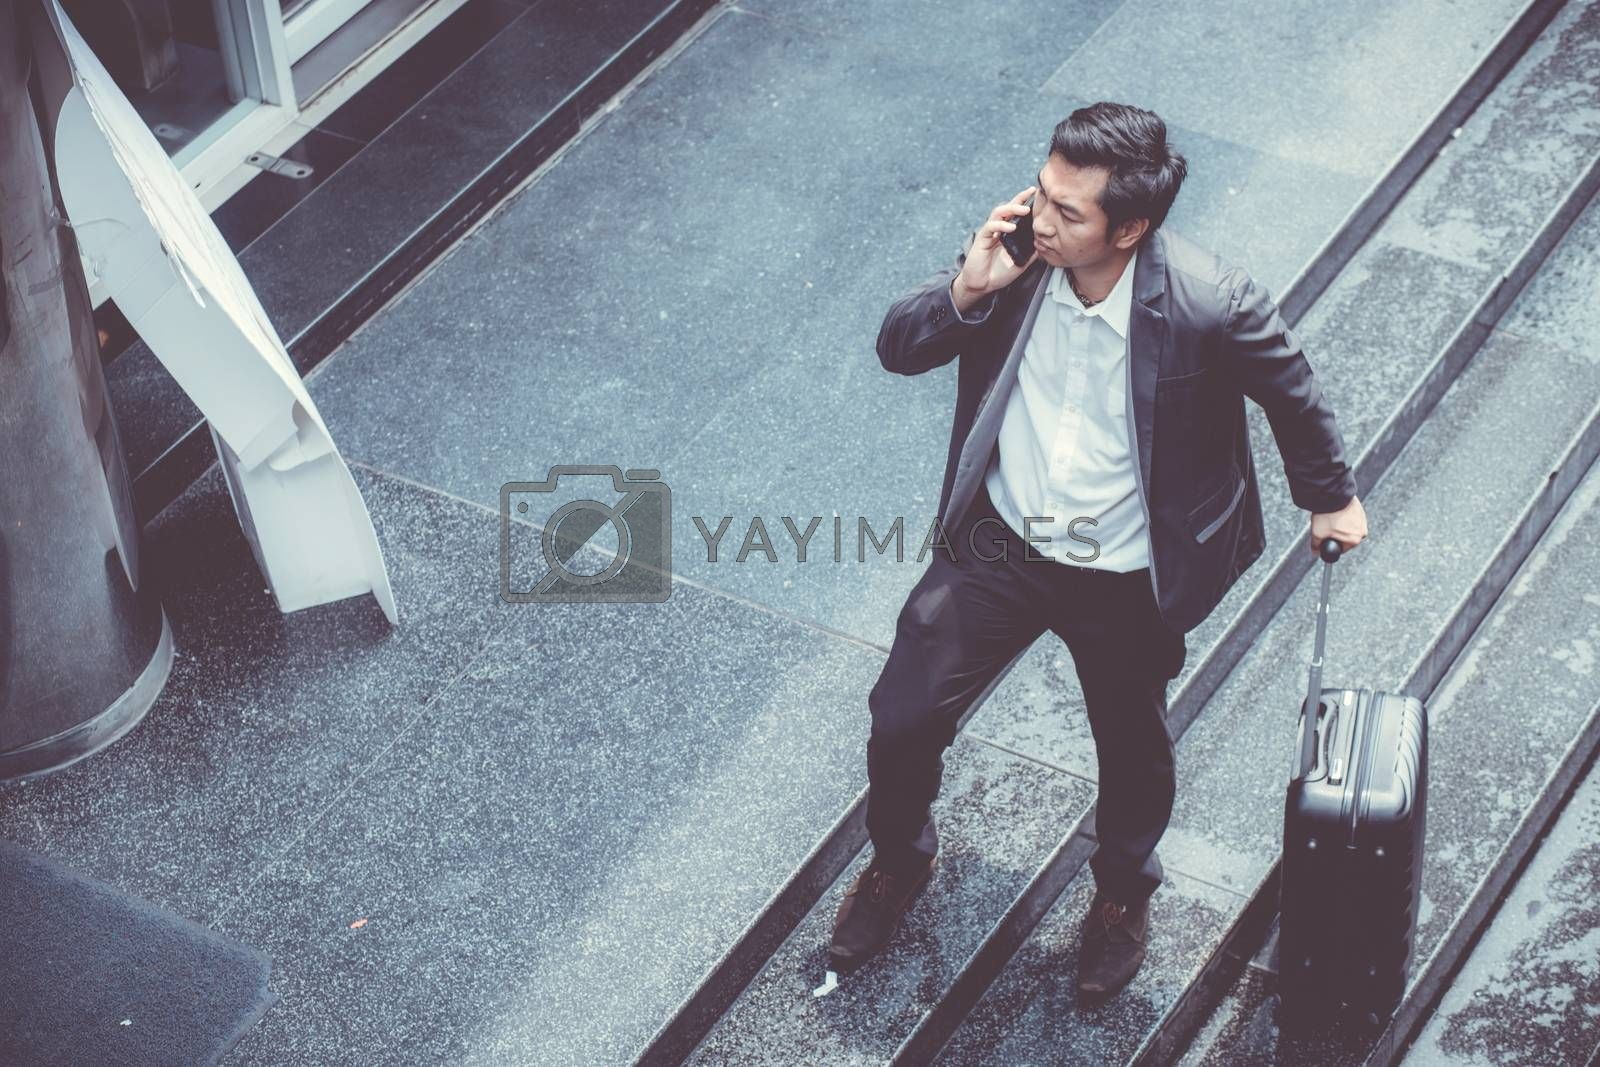 Asian elegant businessman wear suit talking mobile phone while walking holding suitcase outdoor on street, young man contact with customer appointment, communication business concept.